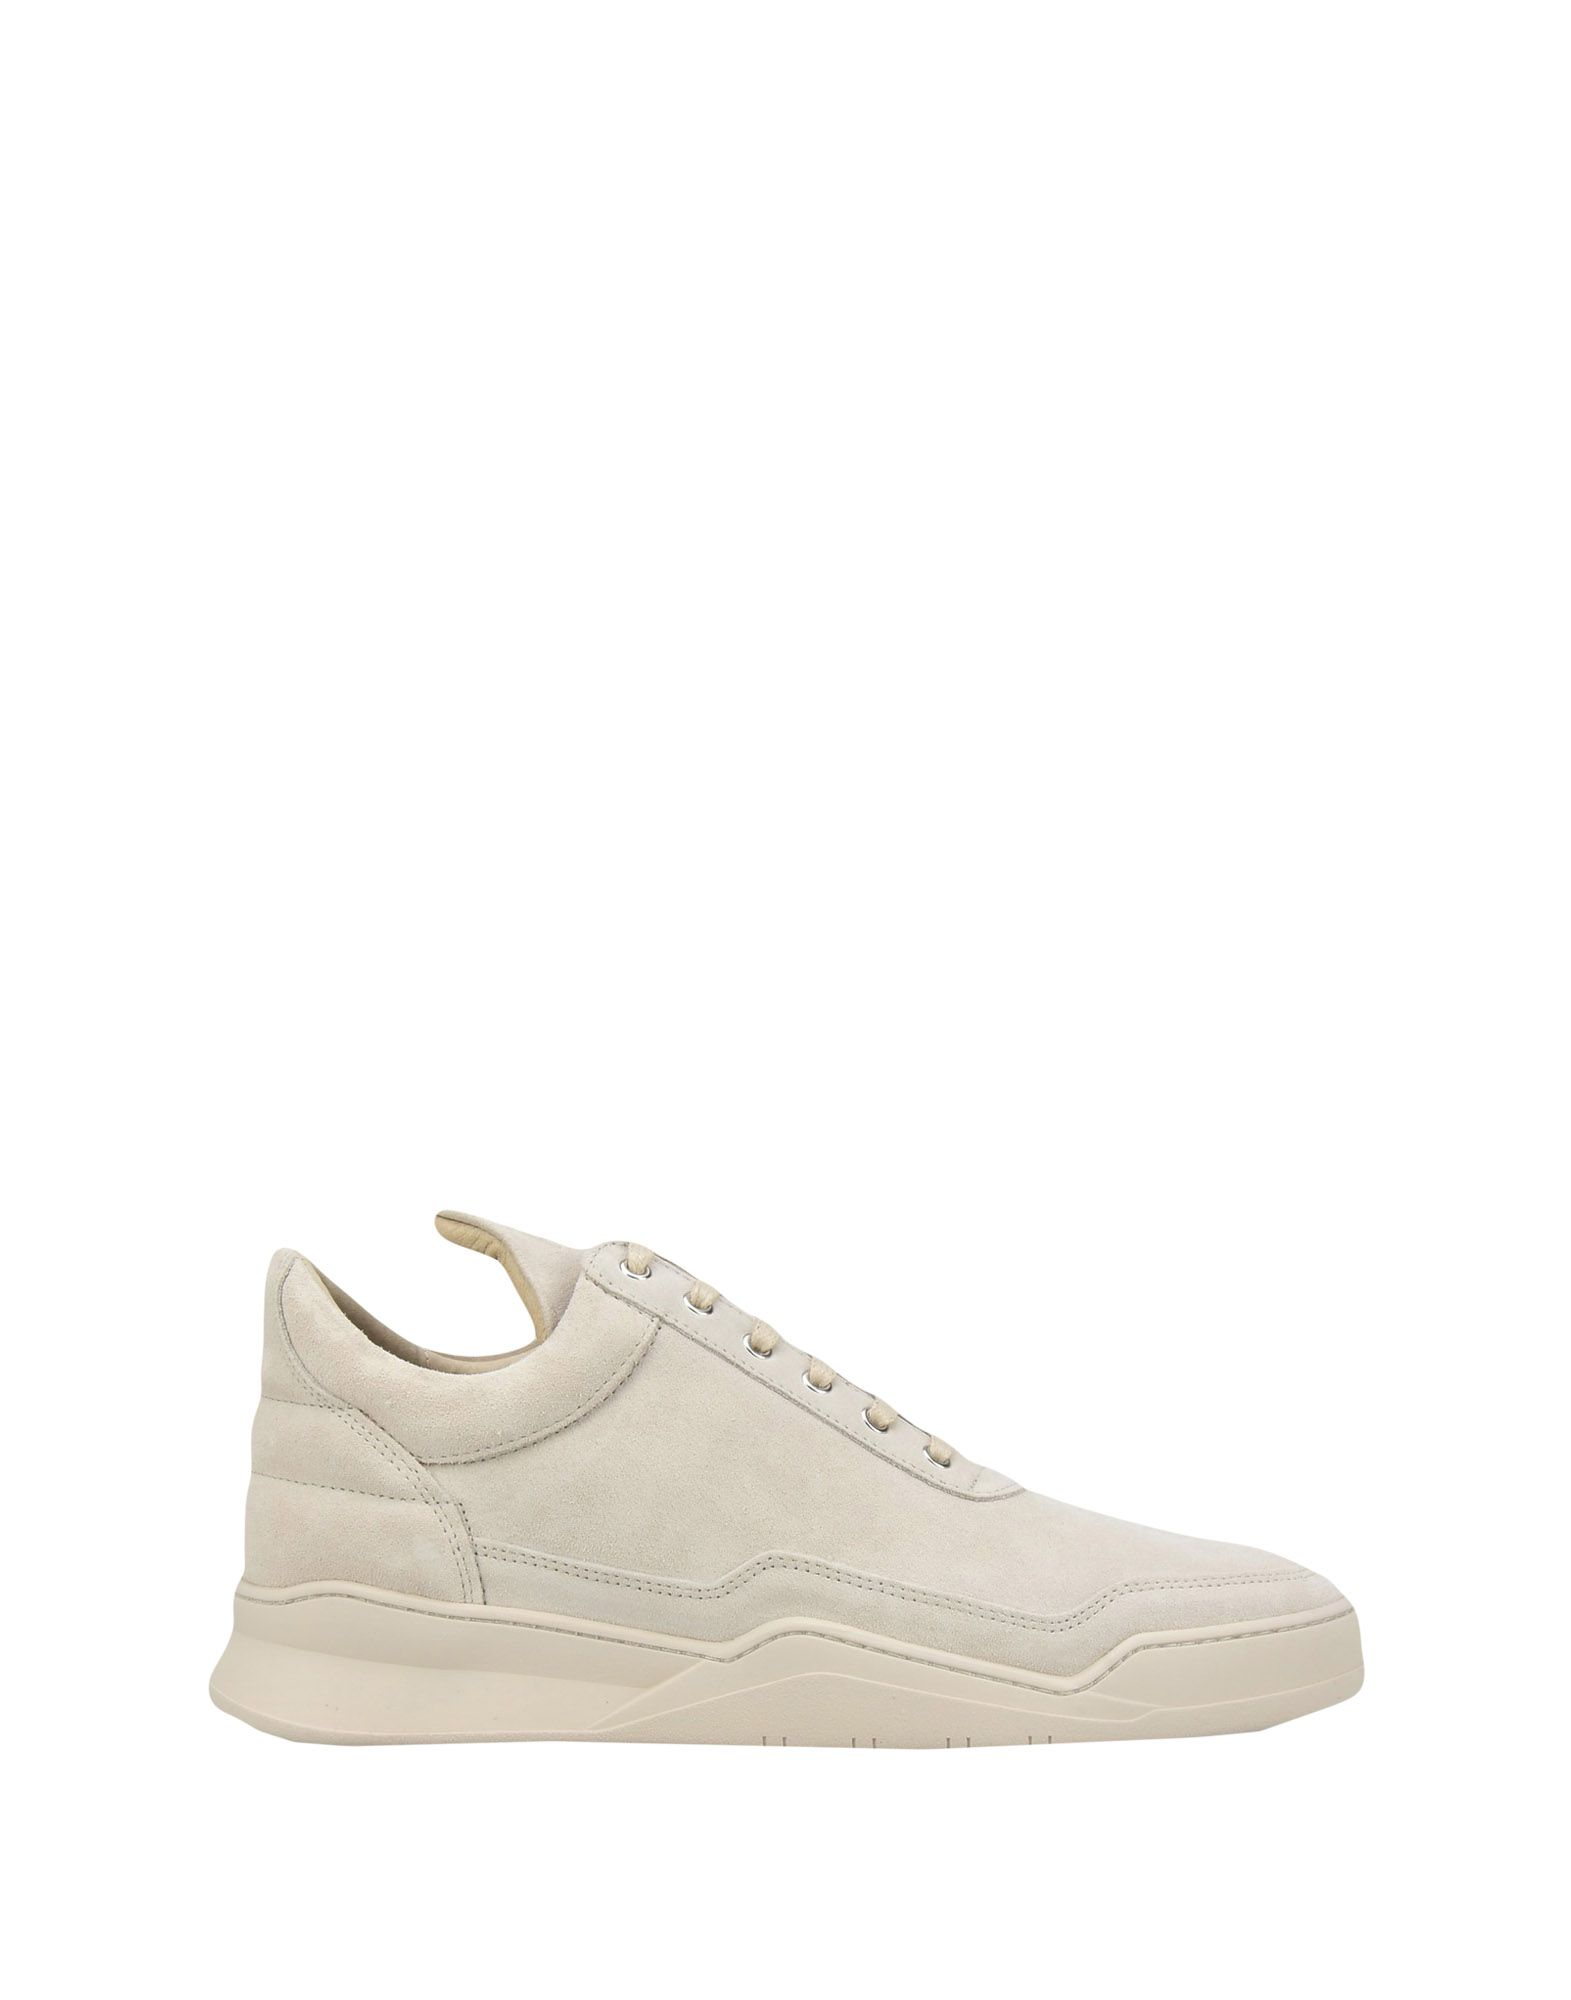 Filling Pieces - Low Top - Sneakers - Pieces Men Filling Pieces Sneakers online on  Canada - 11225114MM 920c2d